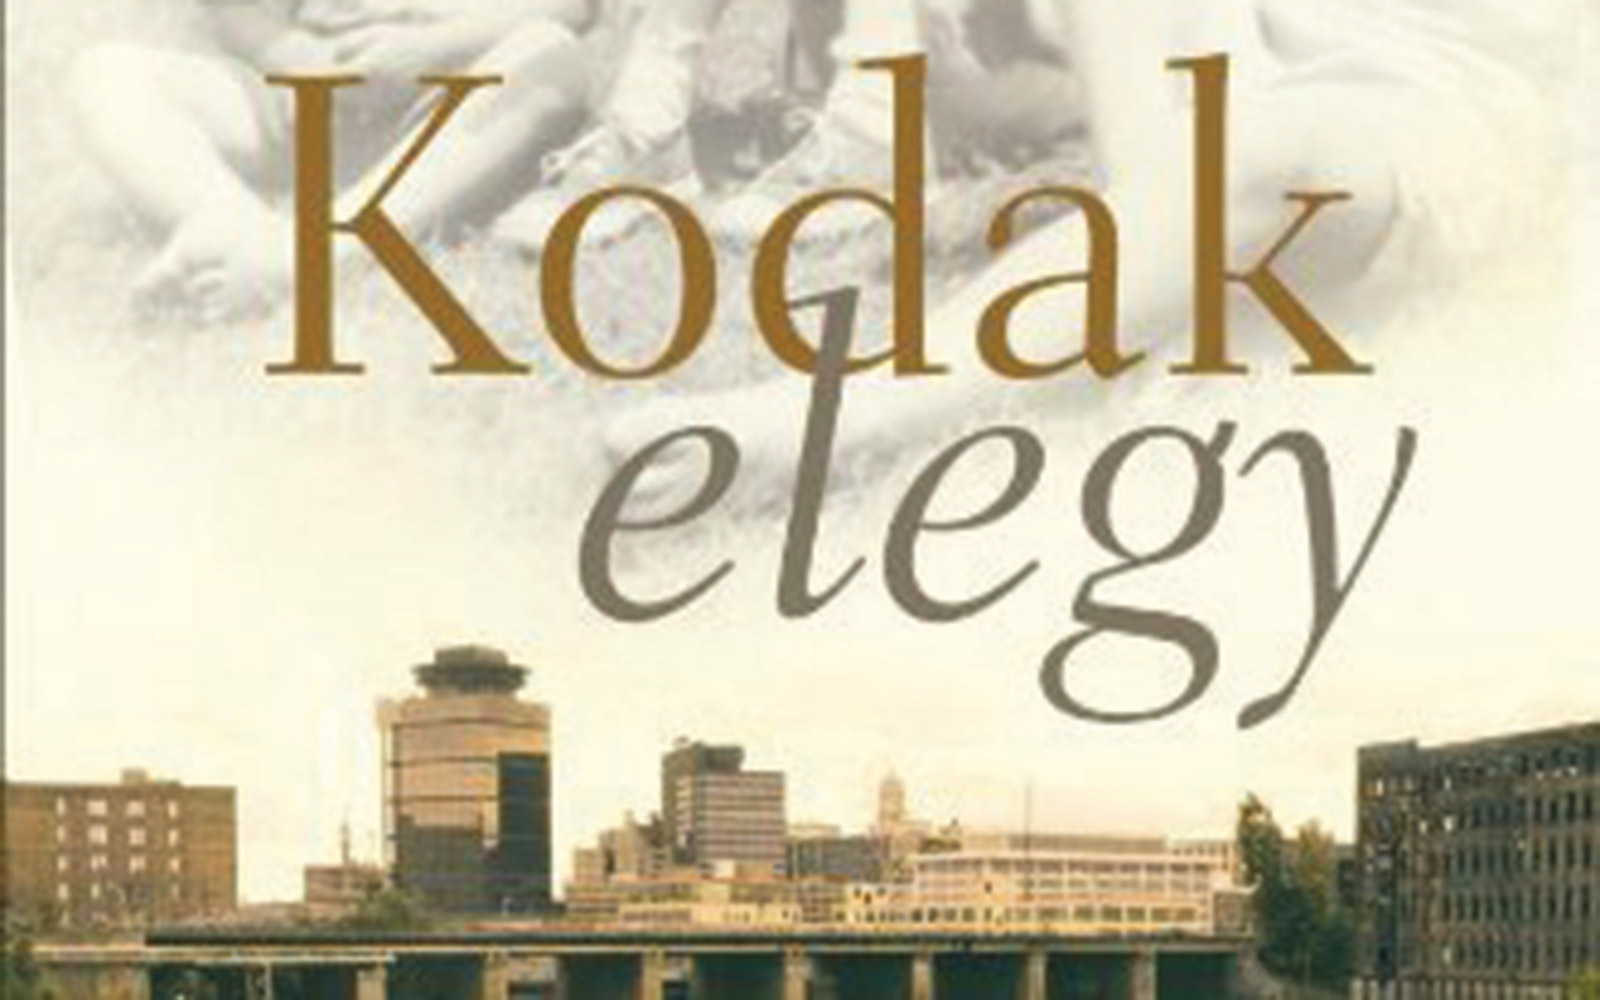 About the book: Kodak Elegy documents Decker's coming-of-age story and the ways in which he confronted a complex world beyond his home in the Rochester, N.Y., suburbs.